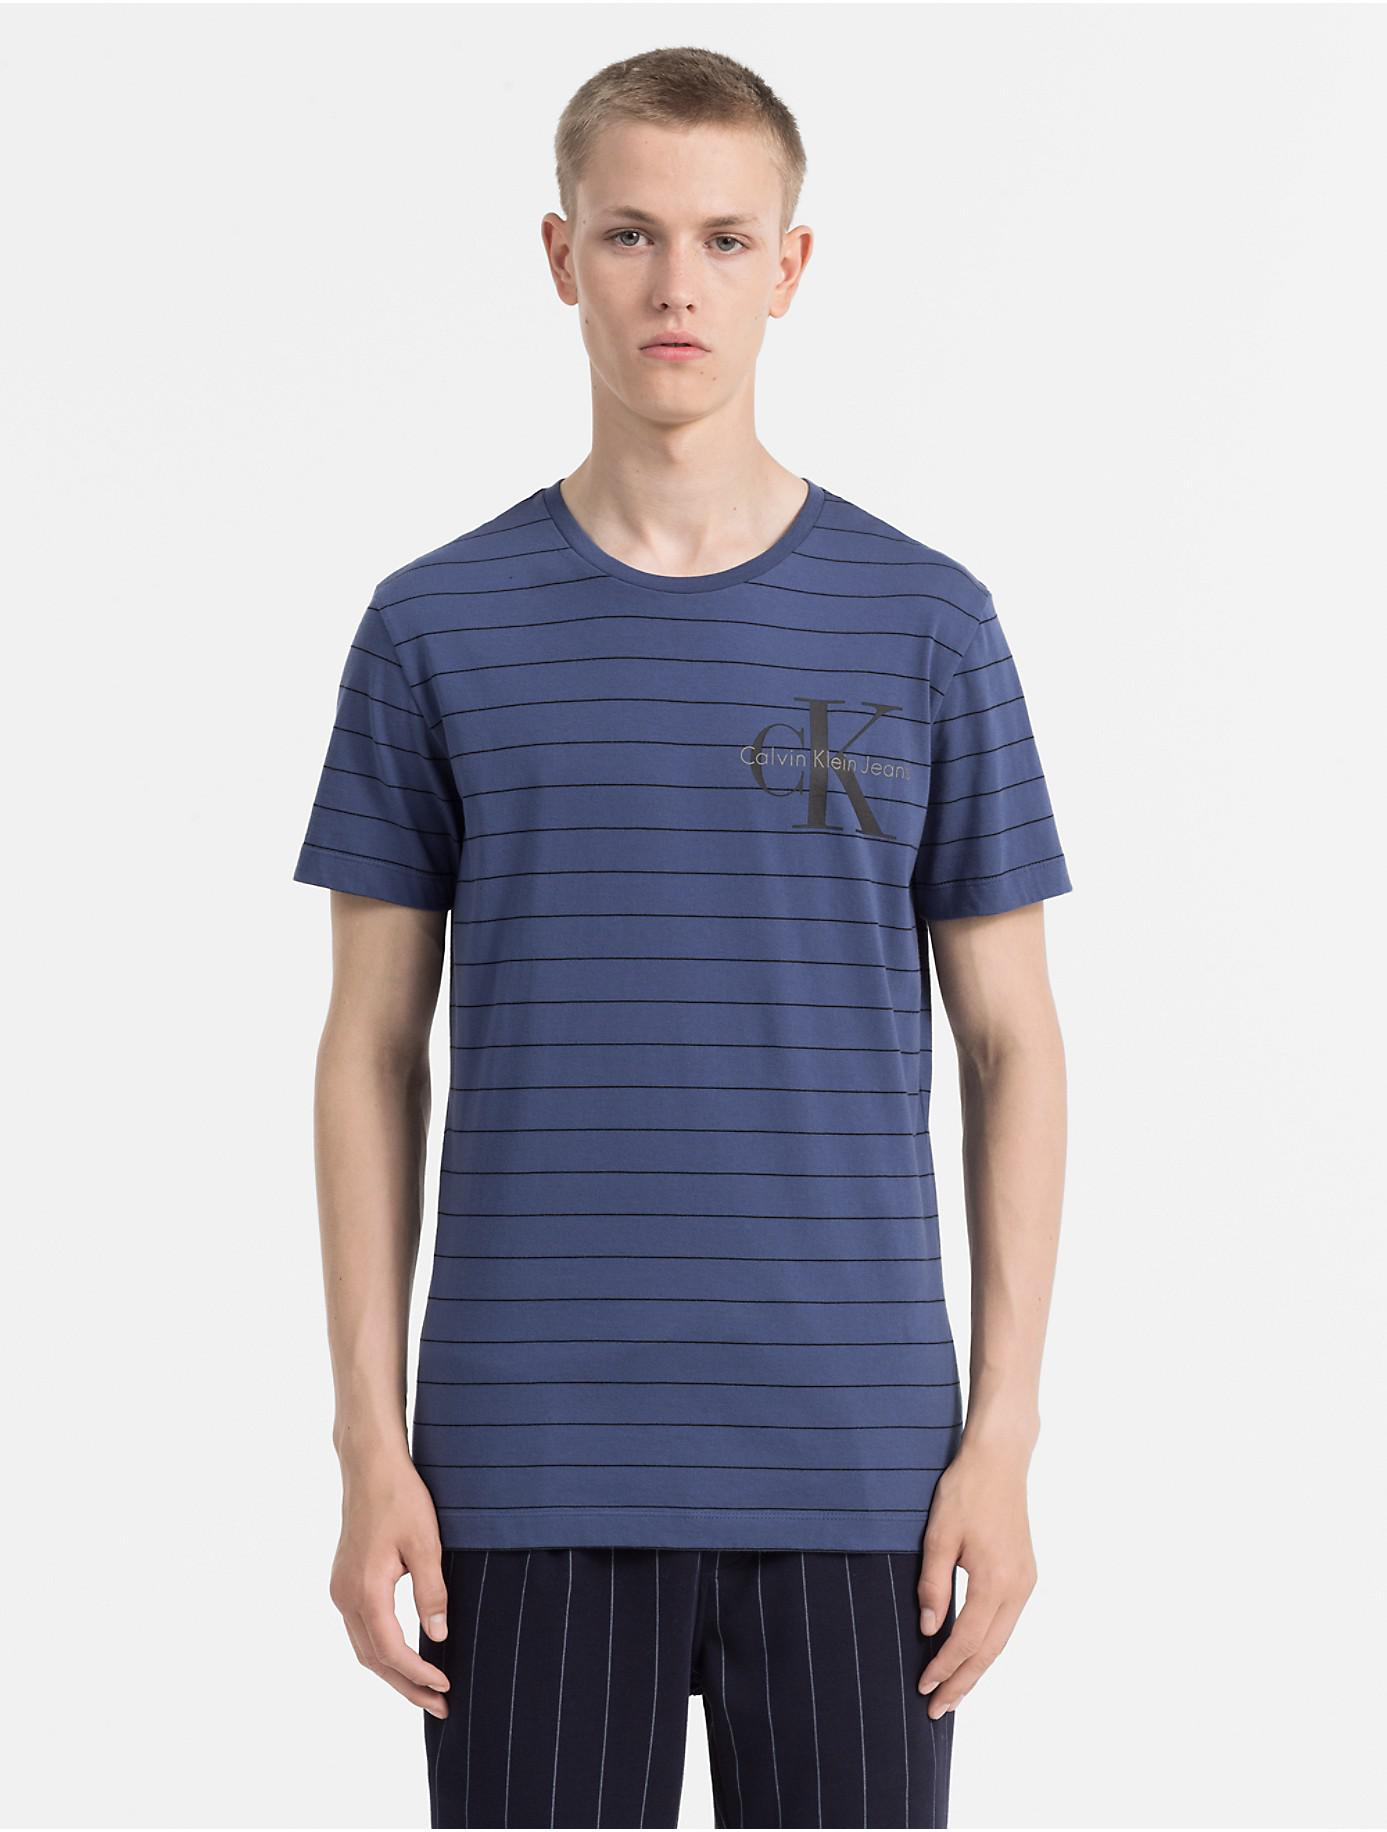 Slim Organic Cotton T-shirt Calvin Klein Discount Collections Cheap Price In China Discount New Arrival Free Shipping Sast Great Deals Cheap Online YLxQD7BWE